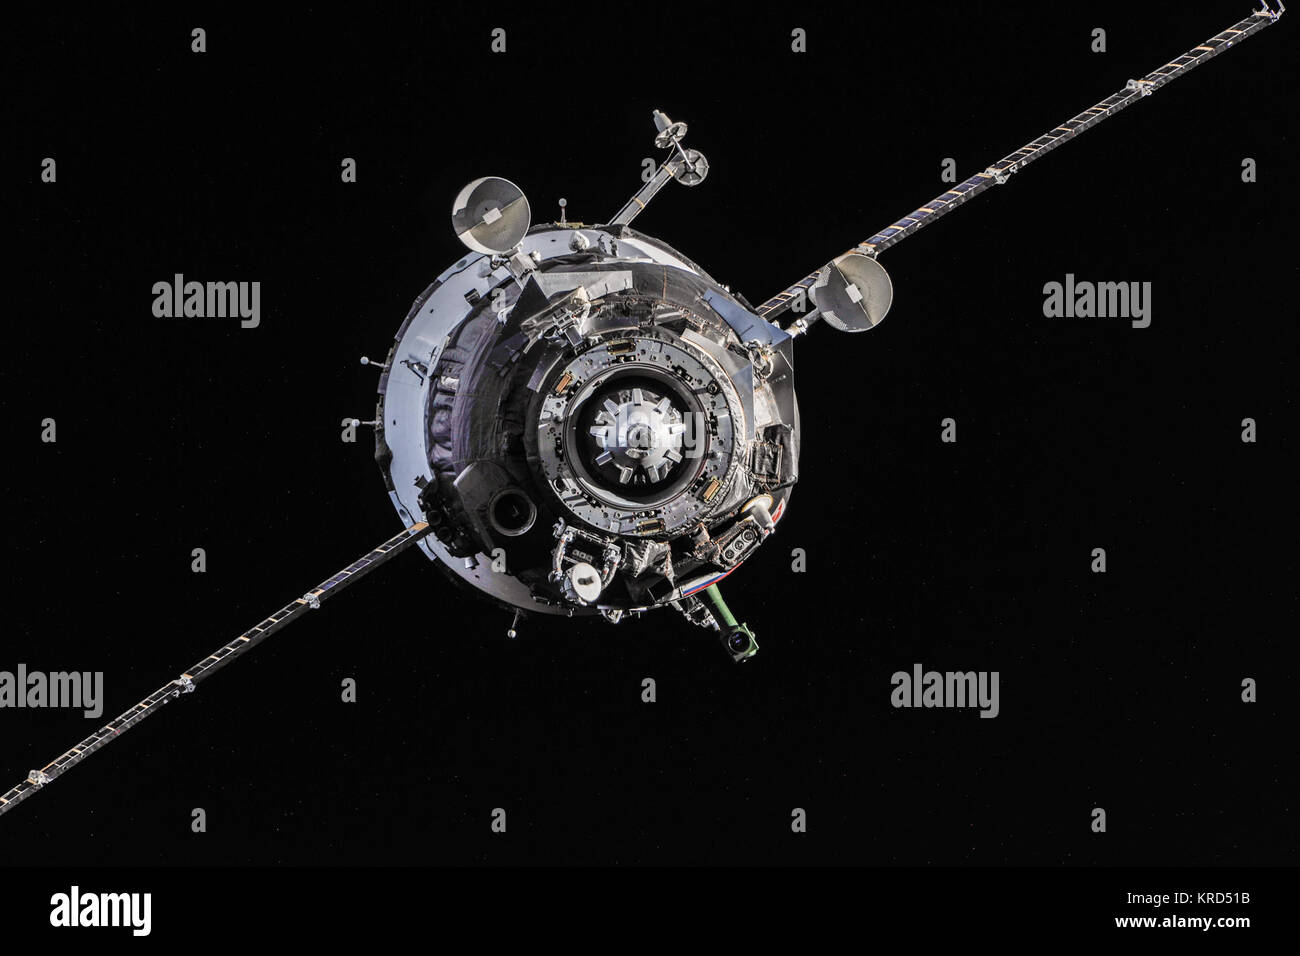 Soyuz TMA-10M spacecraft approaches the ISS - Stock Image